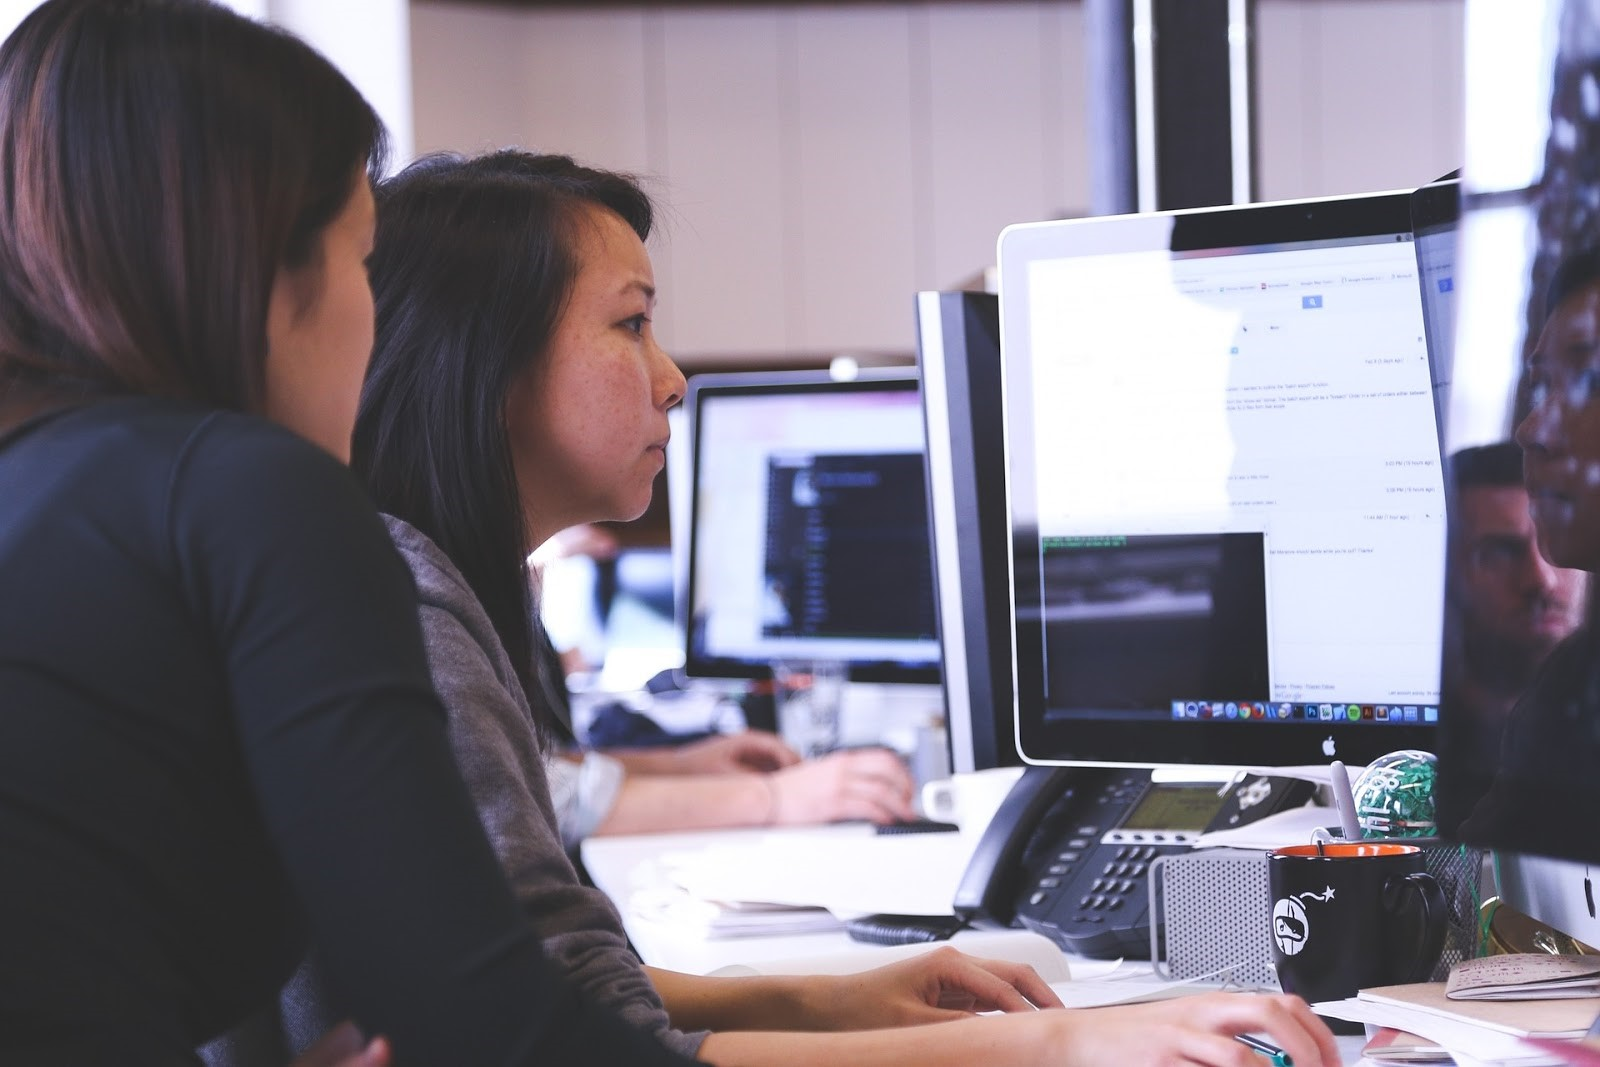 Photo of two people working at a computer.